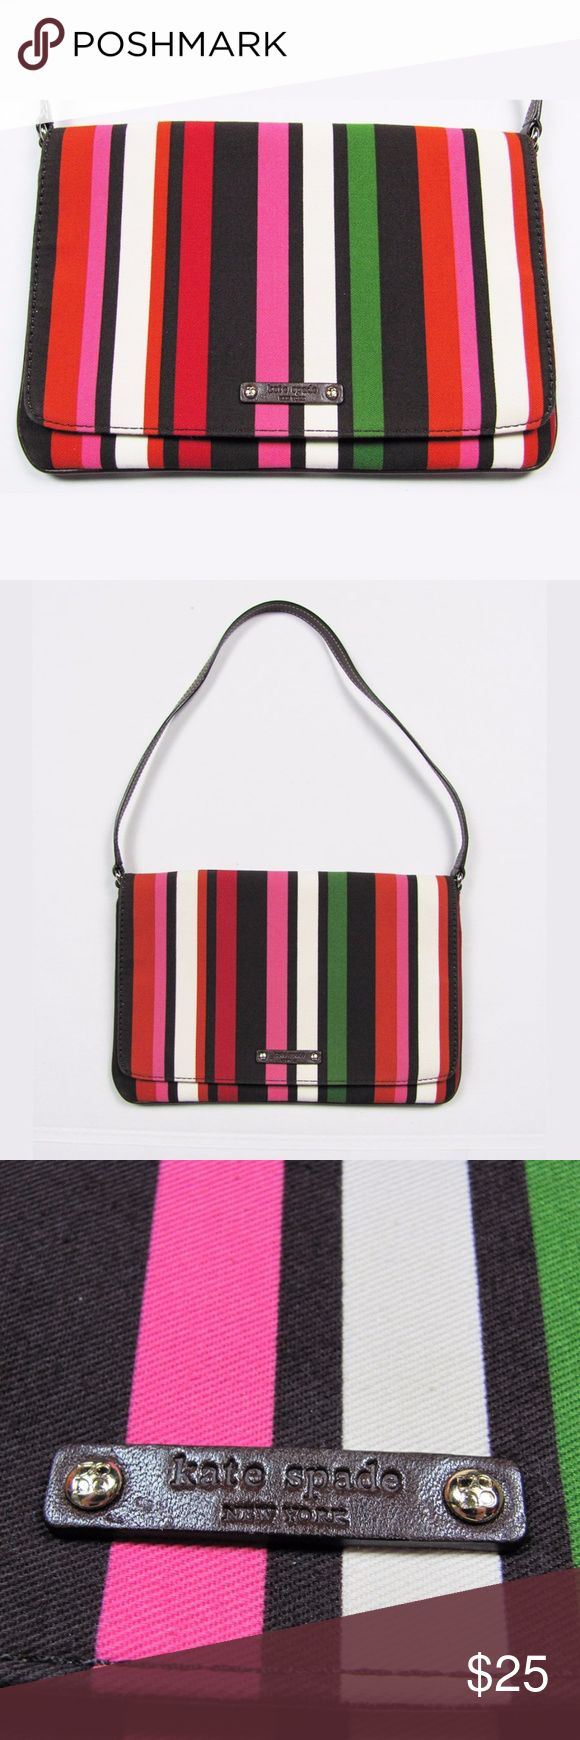 "Kate Spade Multicolor Stripe Shoulder Bag Purse Gorgeous striped bag from Kate Spade NY! This thin shoulder purse is great for holding your essentials for a night out or day on the town. Canvas bag with brown leather detail. Vertical stripes of green, pink, beige, brown, and more. Closes with flap and snap with one inner zipper pocket.   Good/great condition. No damage, minimal wear. One minor spot on back - please see last picture. Not noticeable.  Size: 10.5"" wide, 7"" high, 9.5"" strap…"